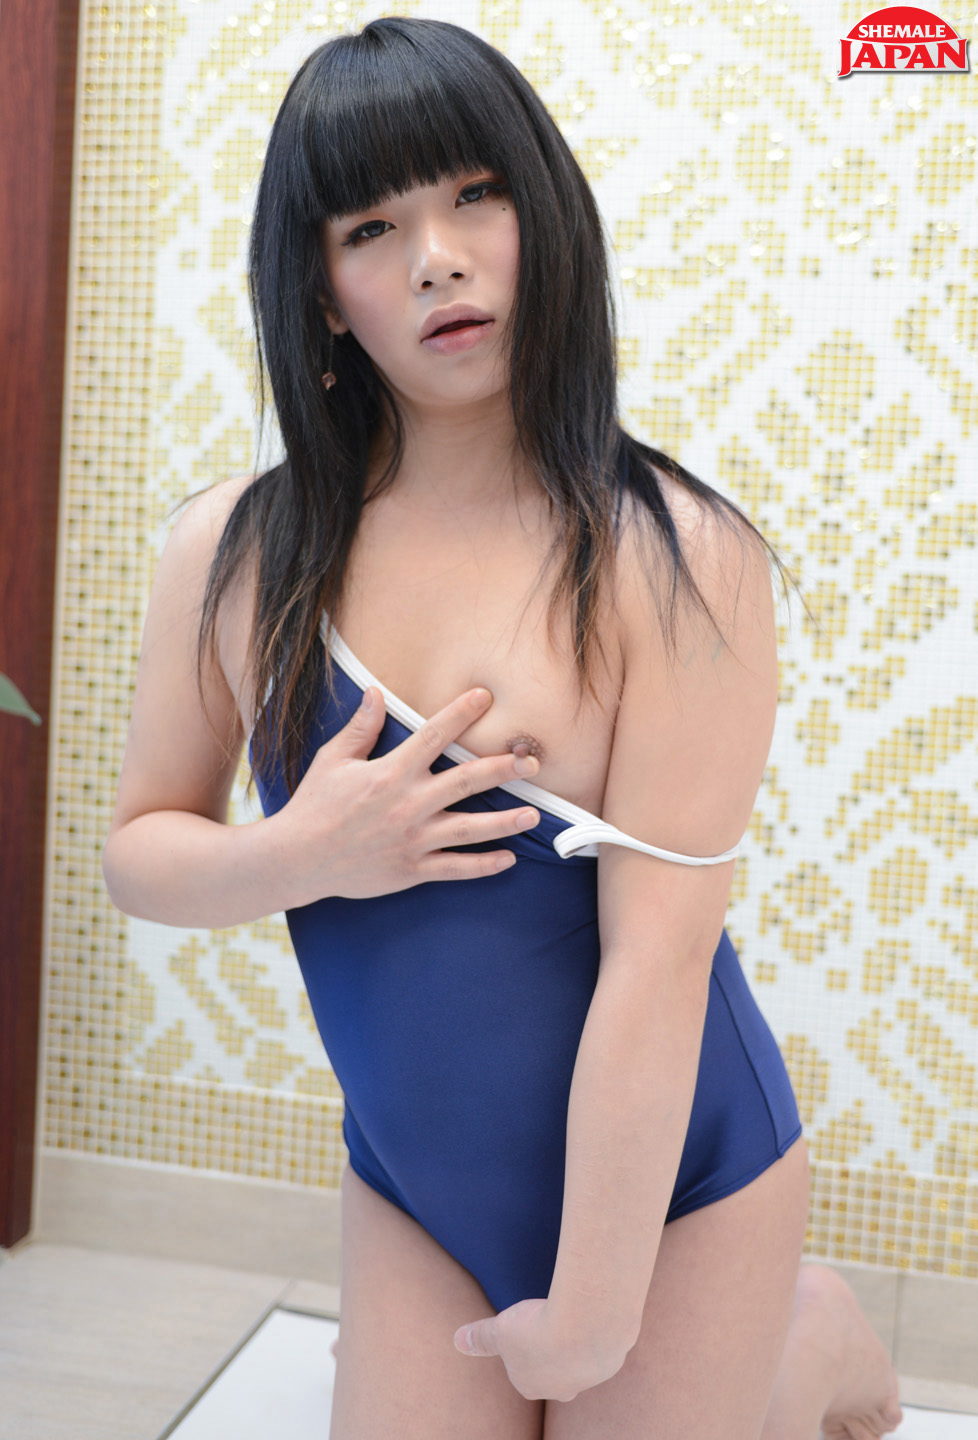 Kinky Japanese shemale Himena Takahashi Loves Her New Swimsuit